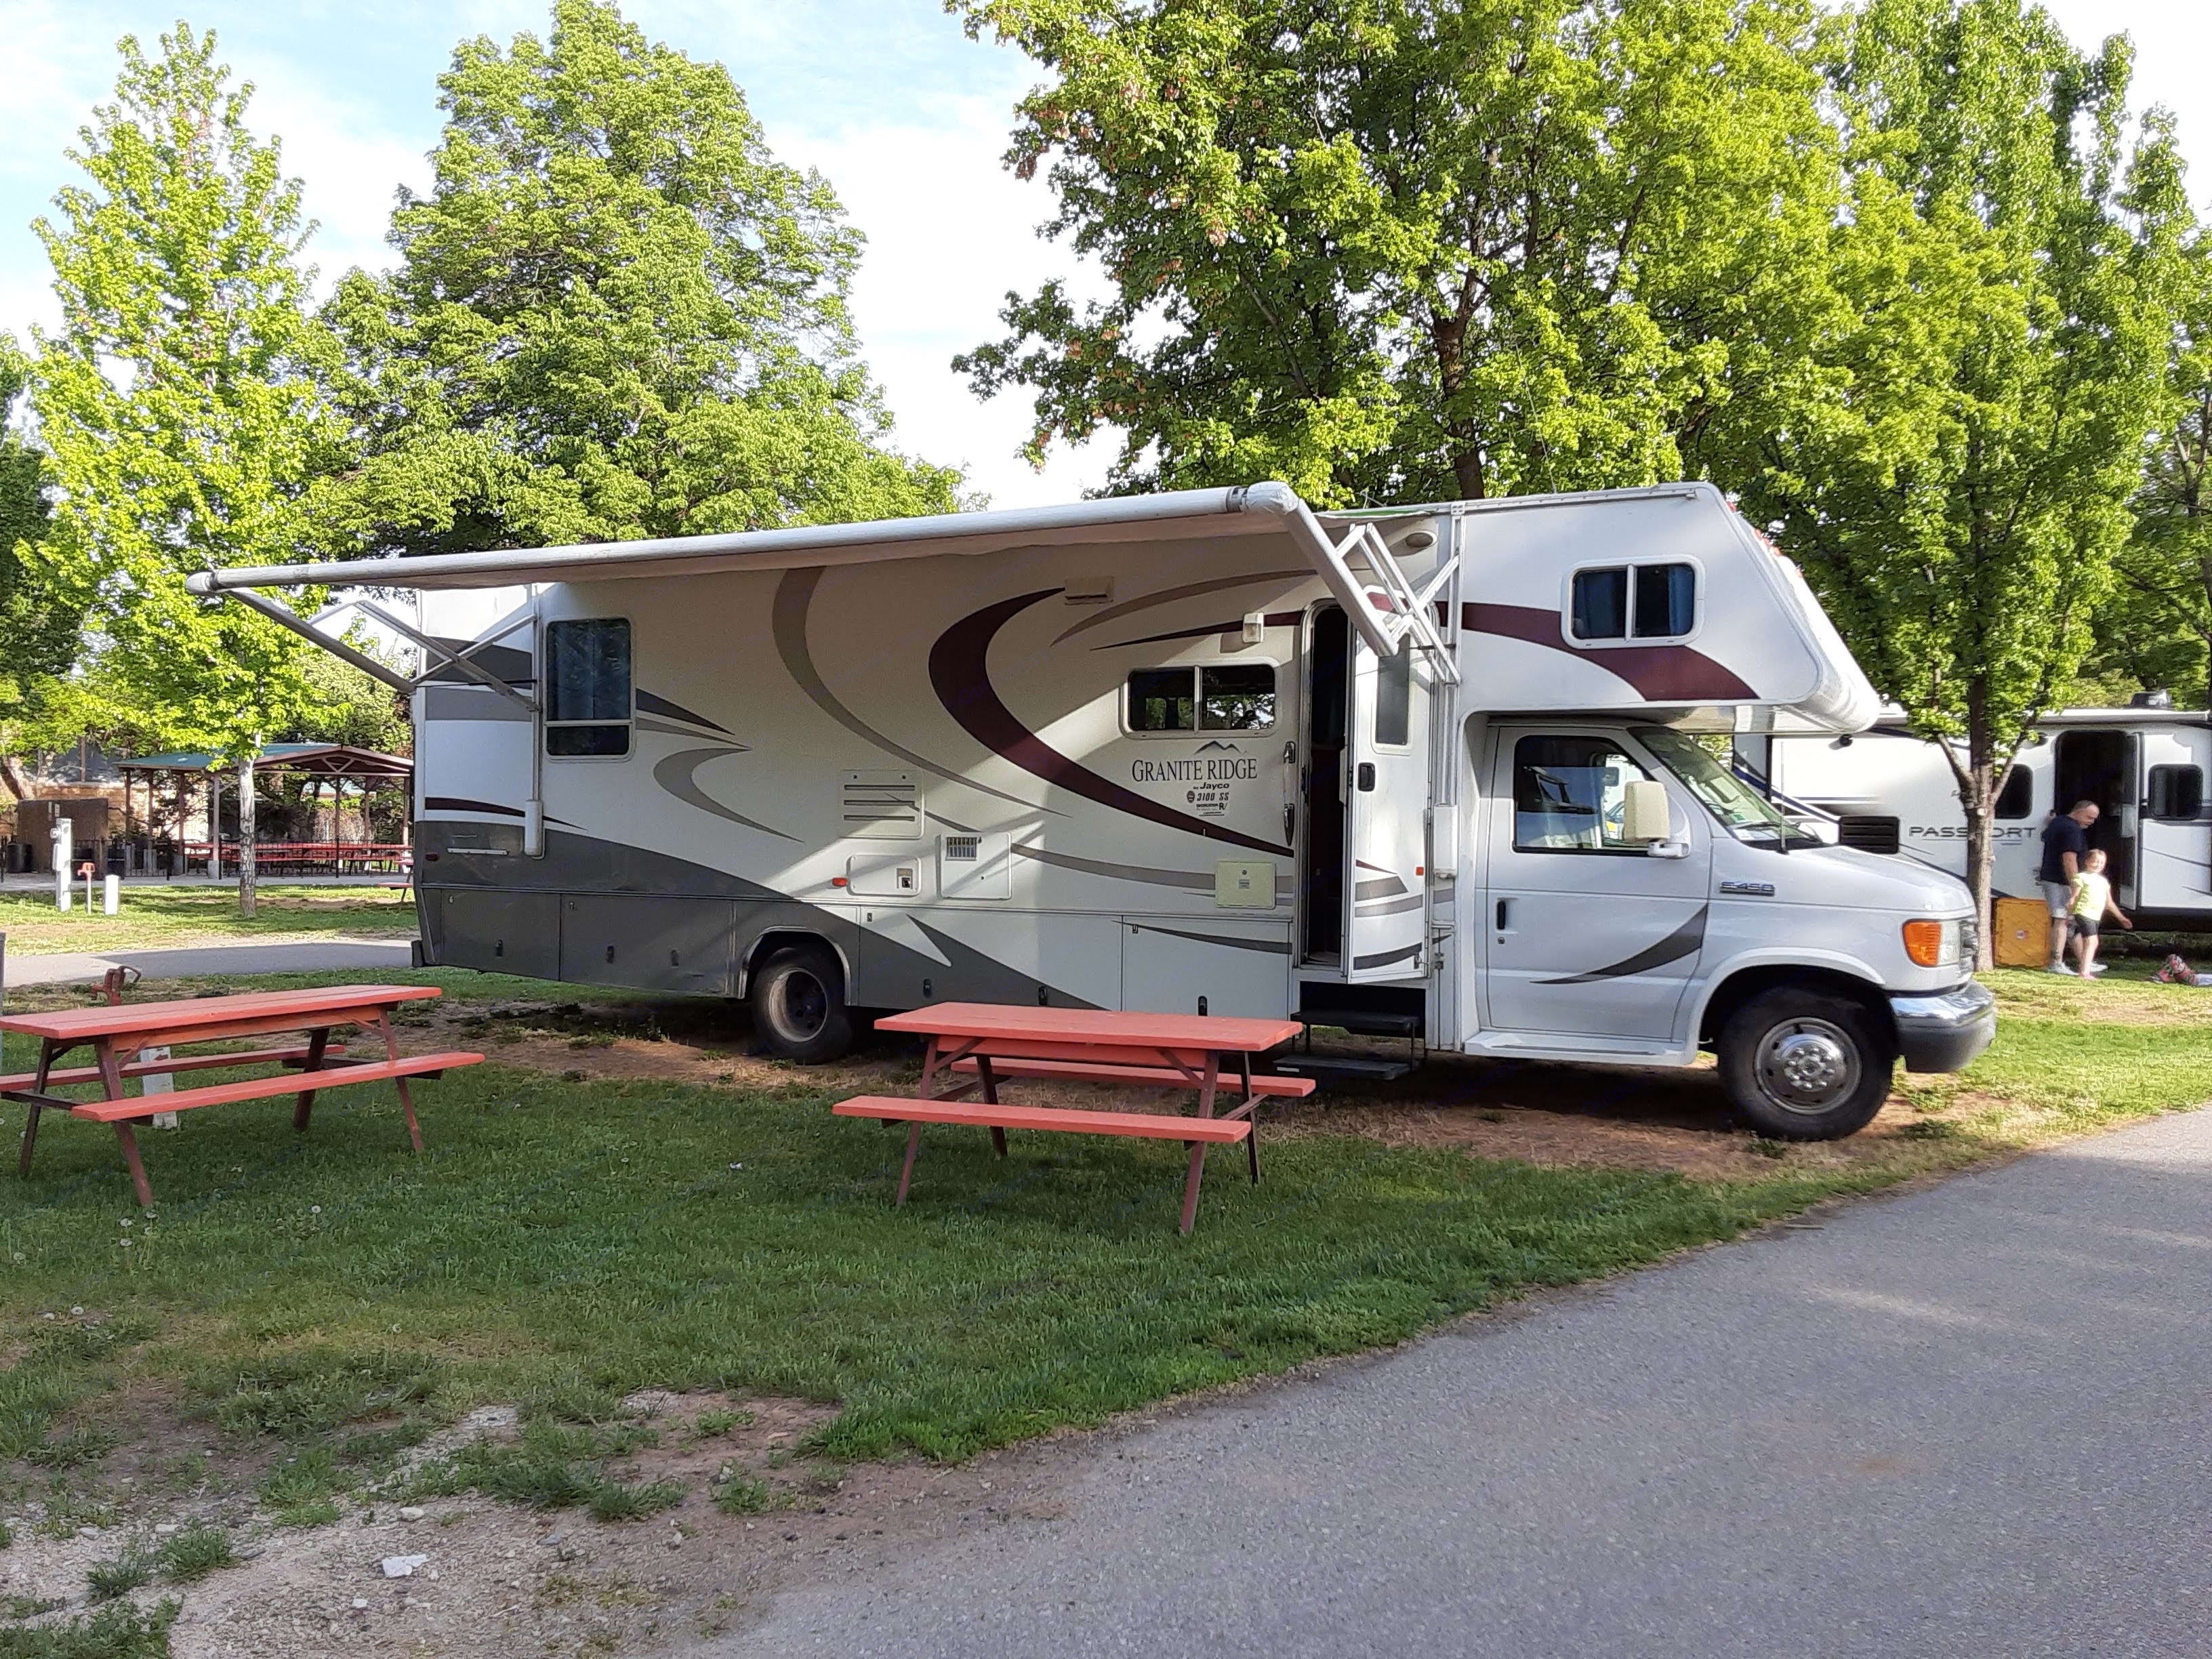 Awning out and ready to picnic at Cherry Hill!. Jayco Granite Ridge 2006